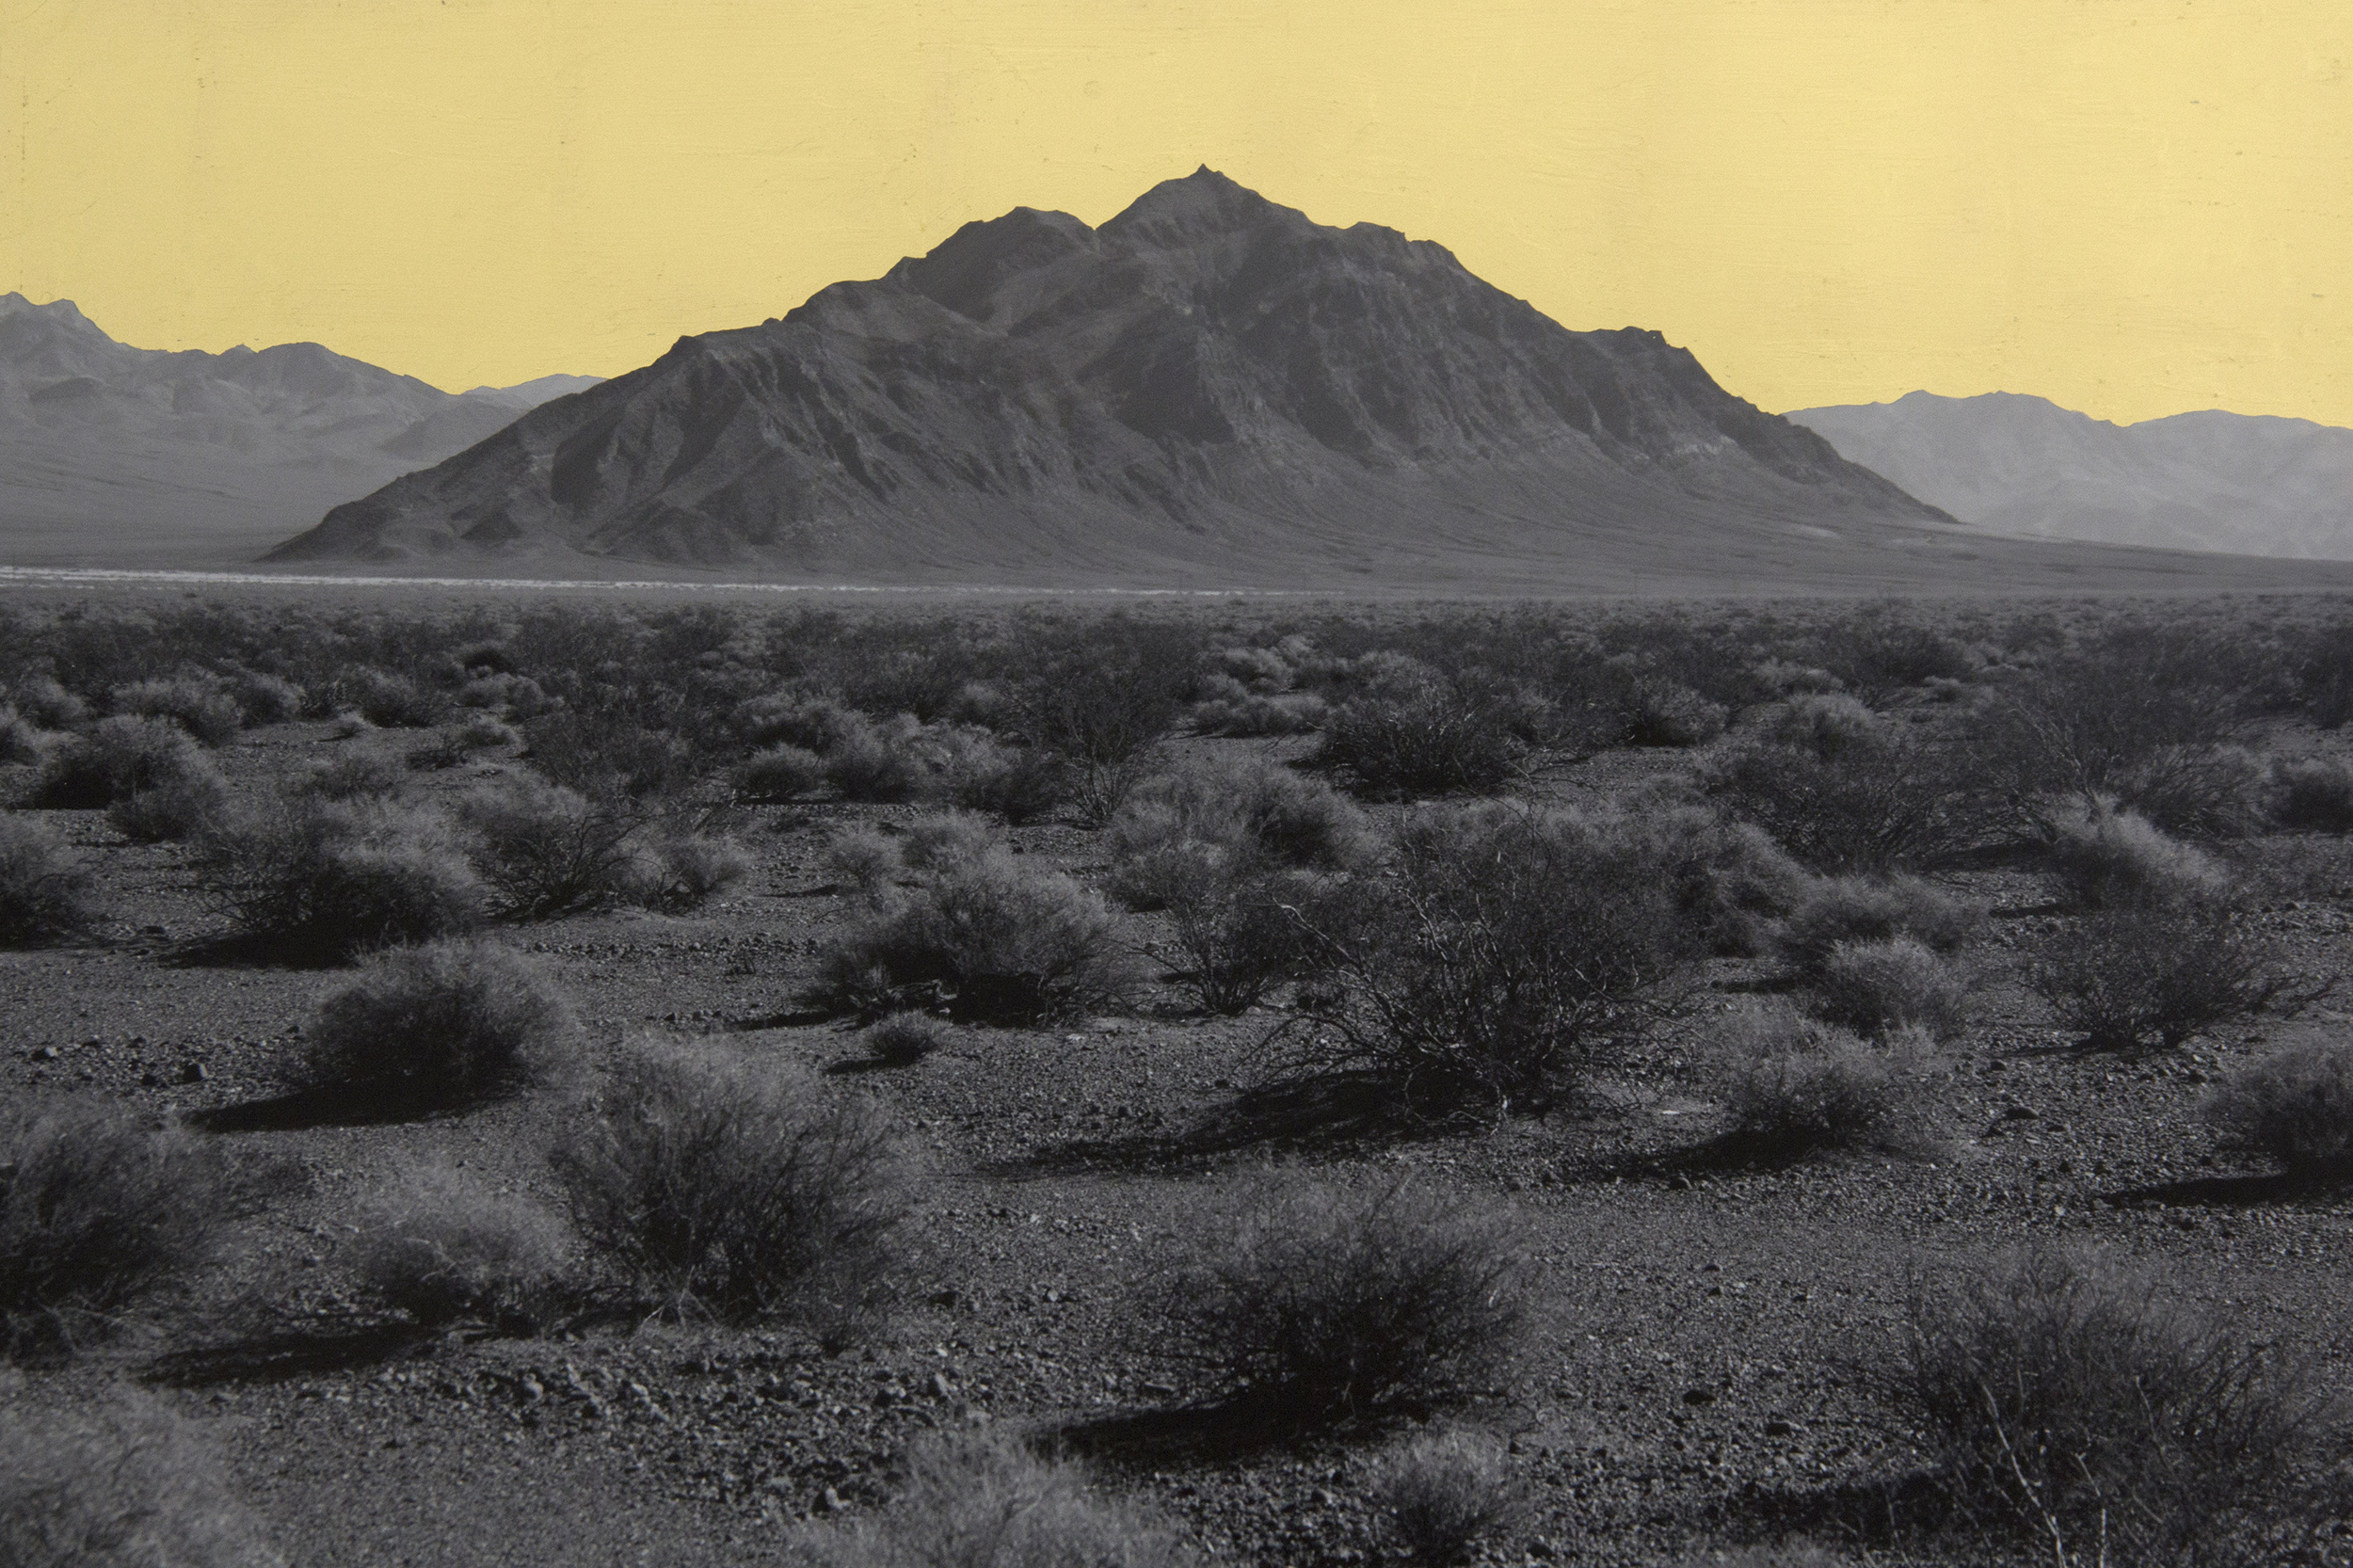 Mountain, Southwest Nevada Desert, 2014, digital pigment print with 22K gold leaf